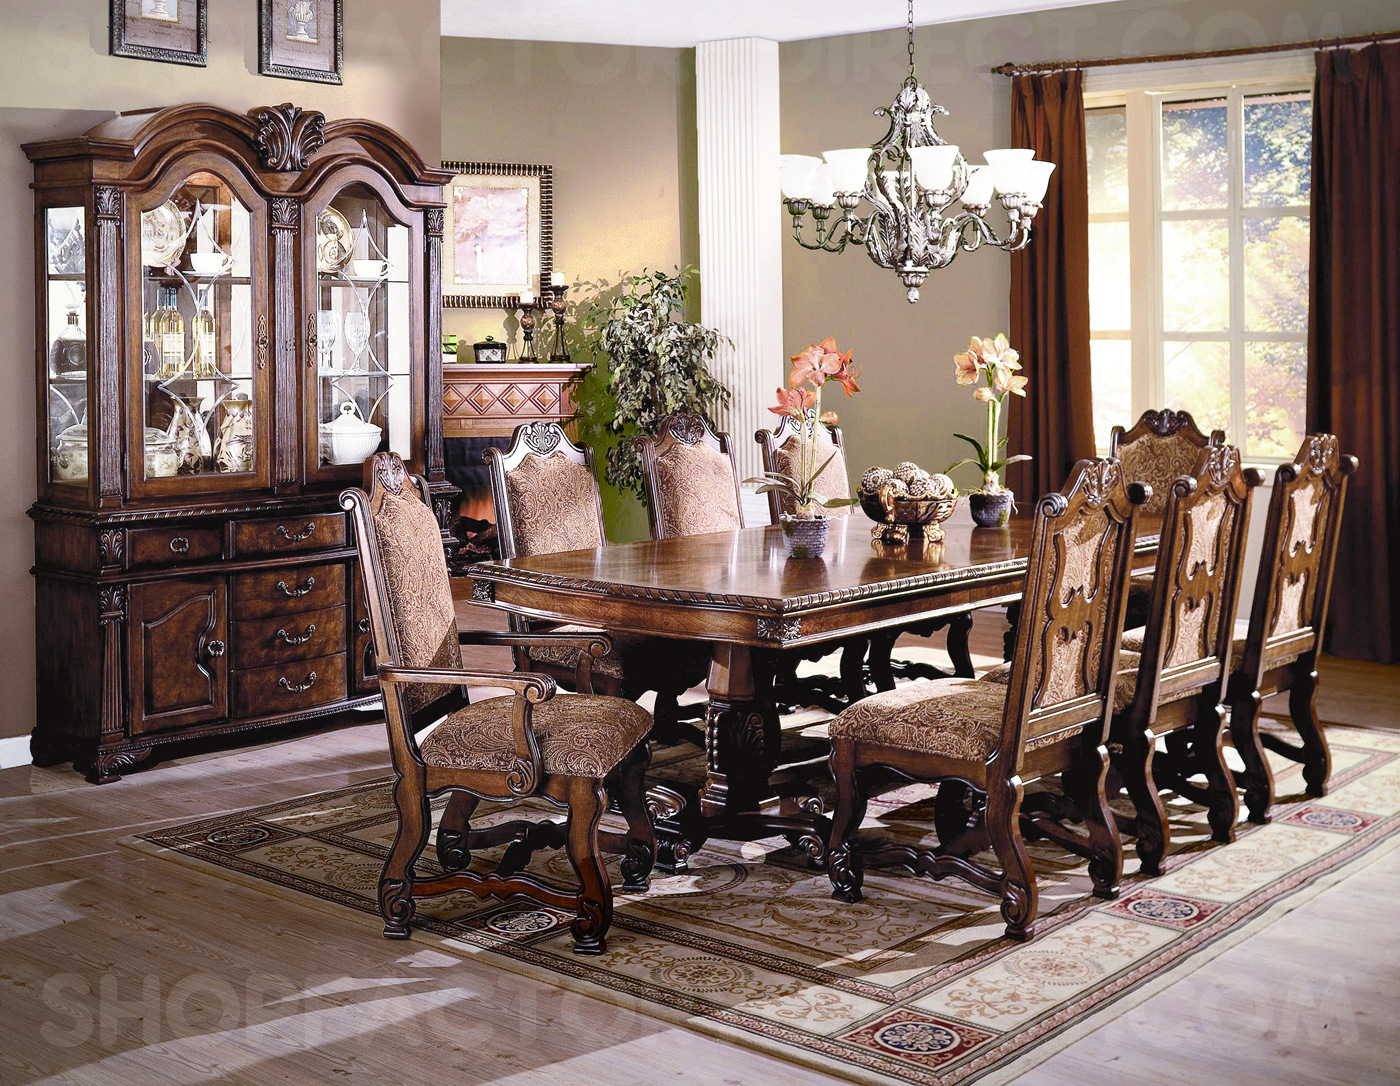 renaissance dining room furniture neo renaissance dining table. Black Bedroom Furniture Sets. Home Design Ideas